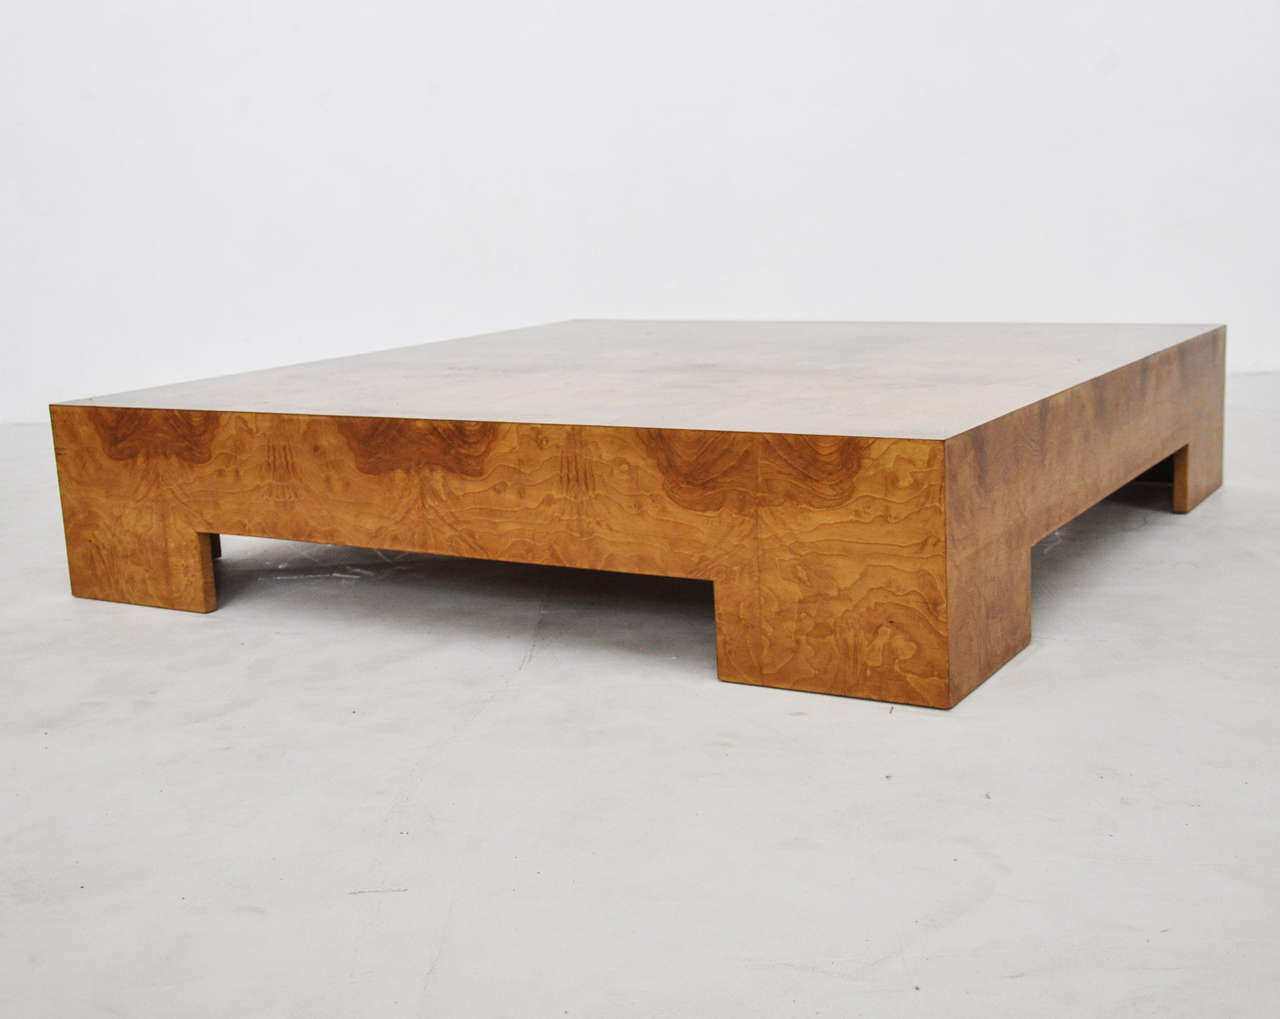 Milo baughman low burl wood coffee table at 1stdibs for Low coffee table wood